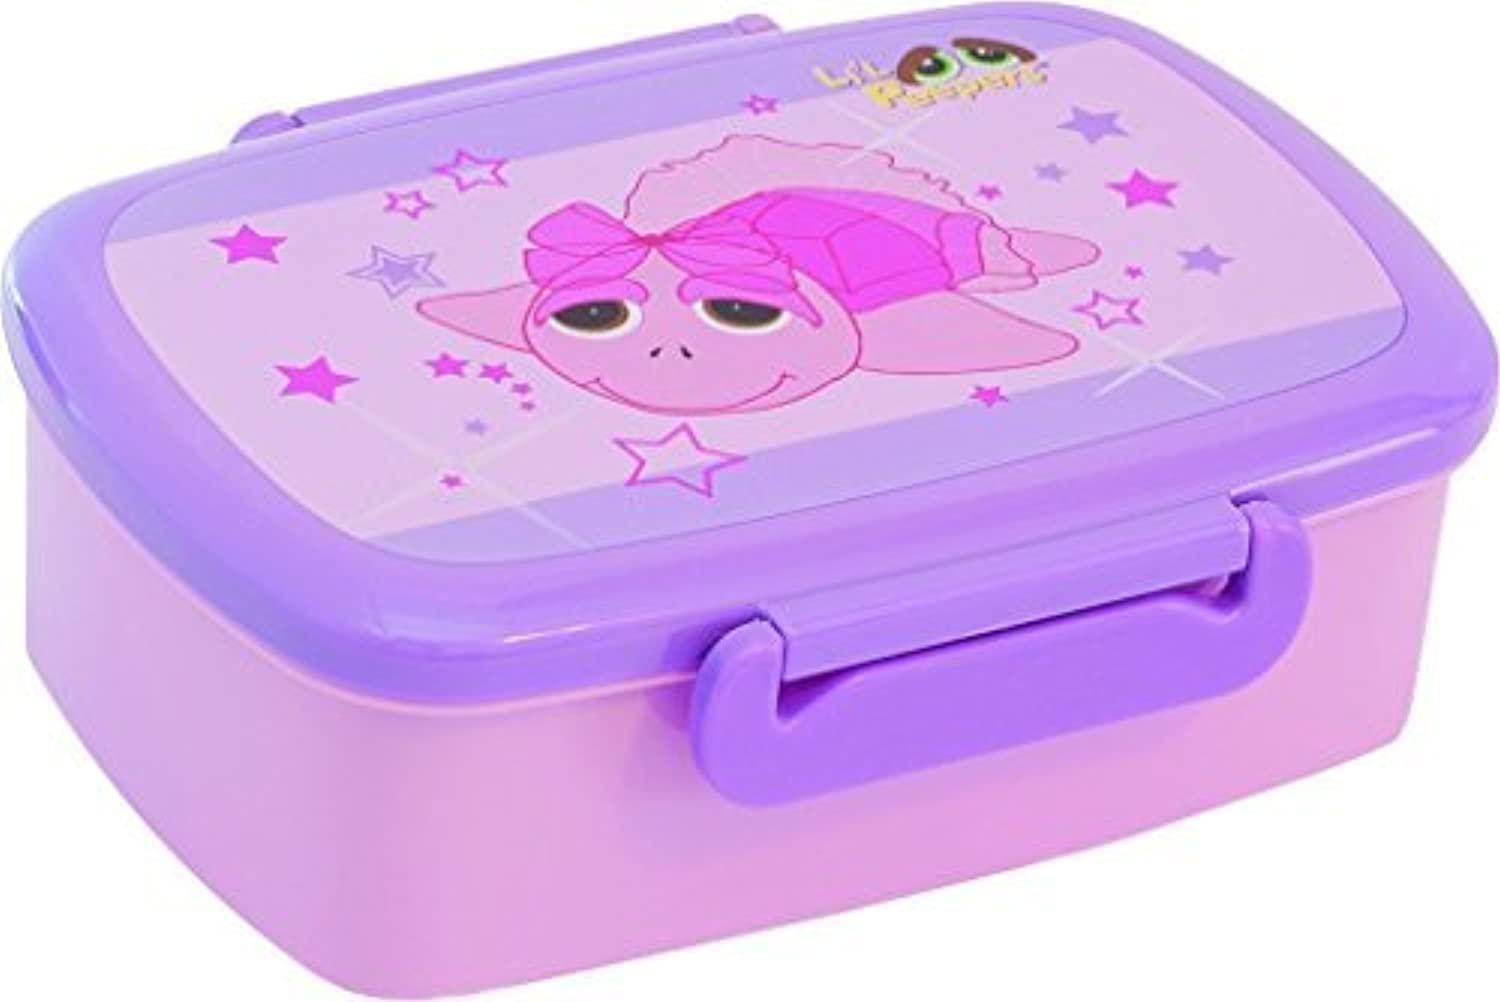 Tutu Ballet Turtle Lunch Box with separate tray inside by Suki Gifts